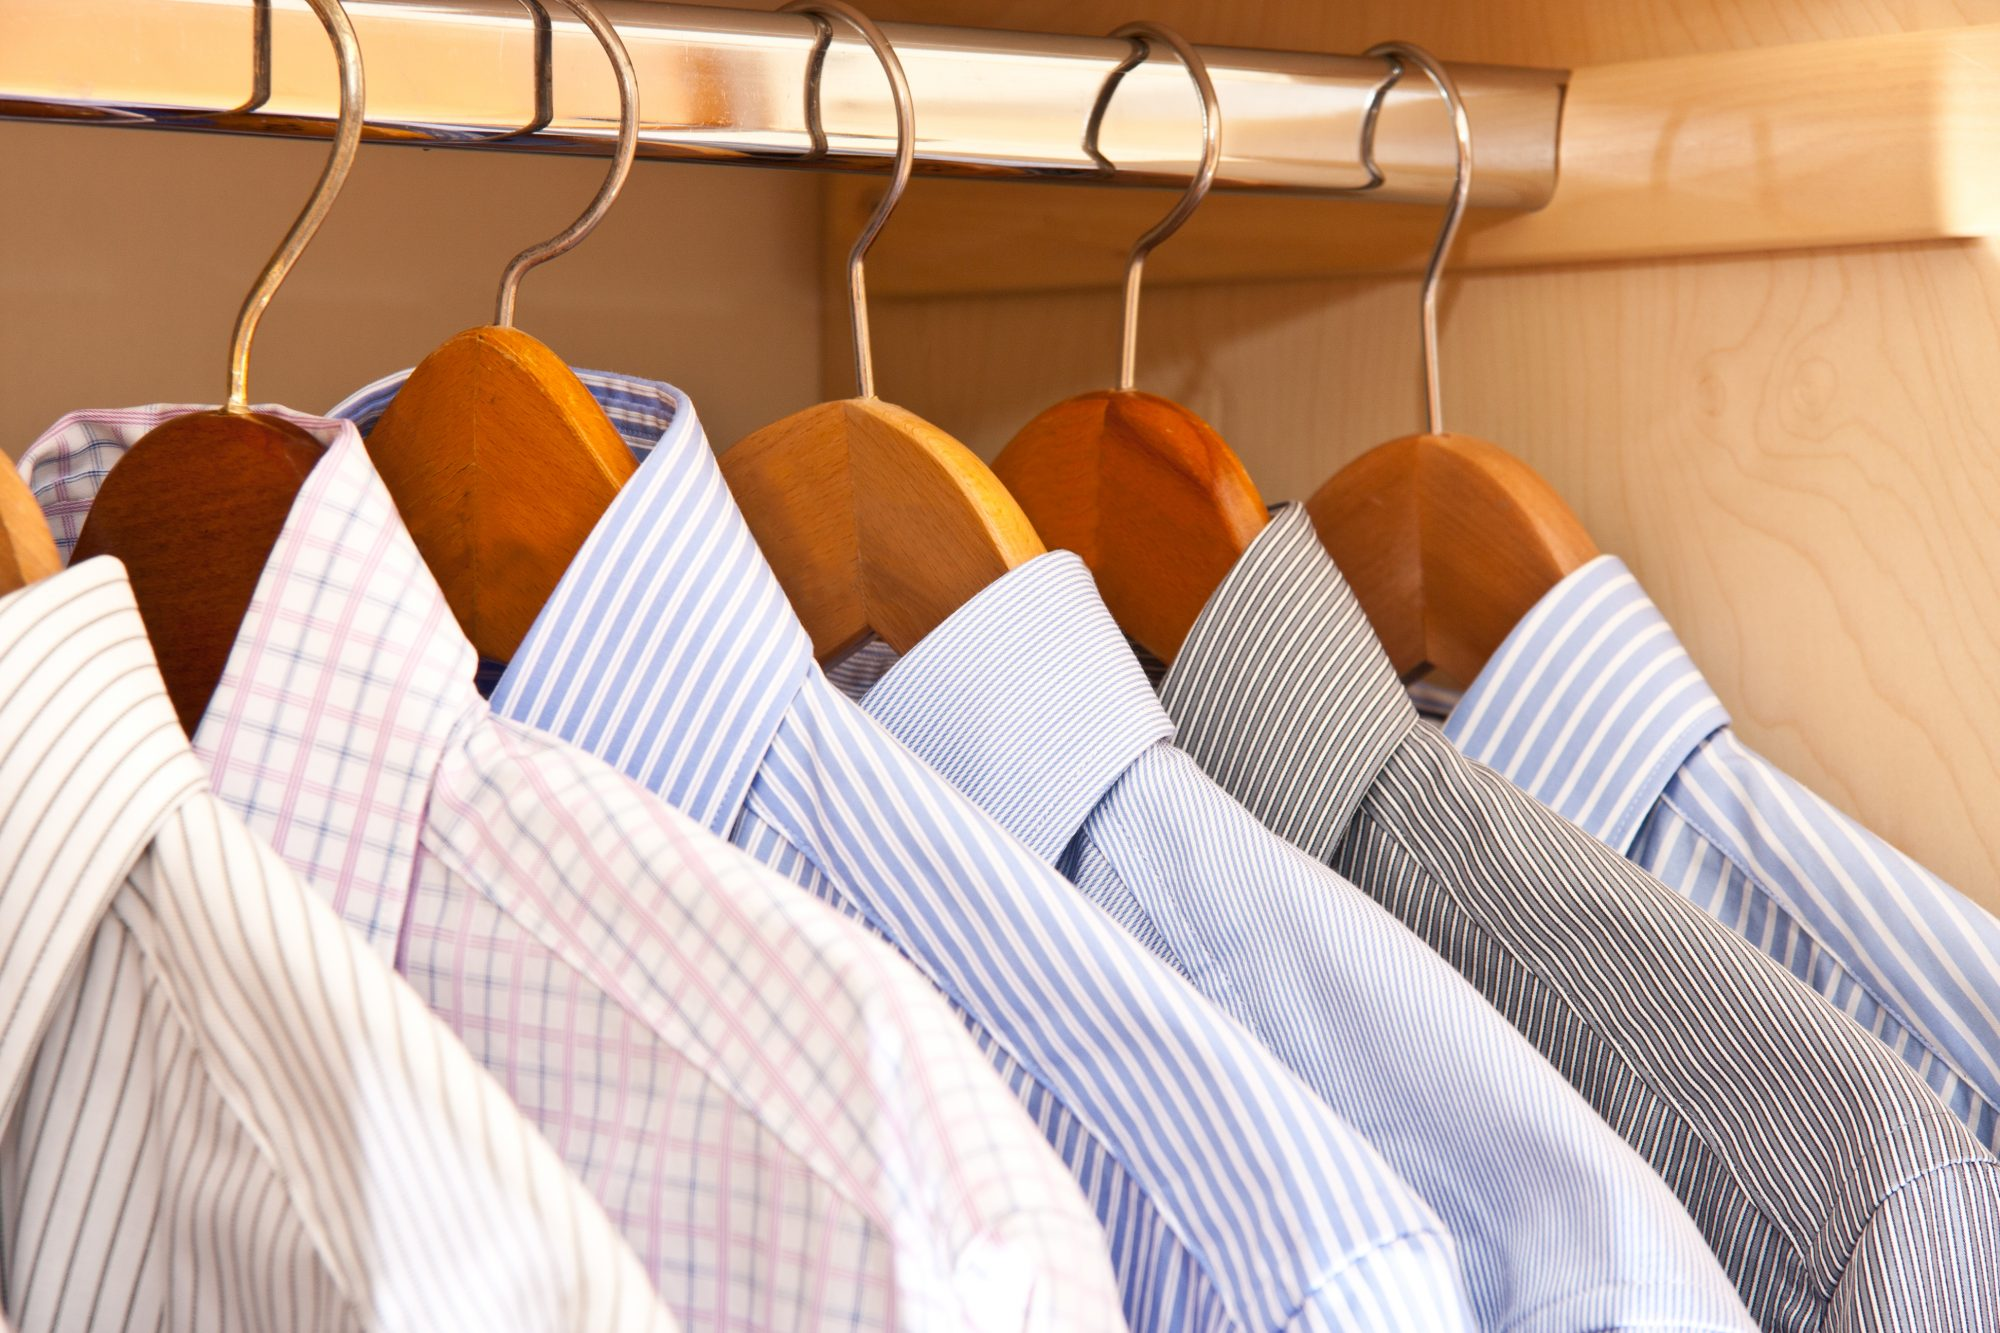 Oxford Shirts Hanging in Closet